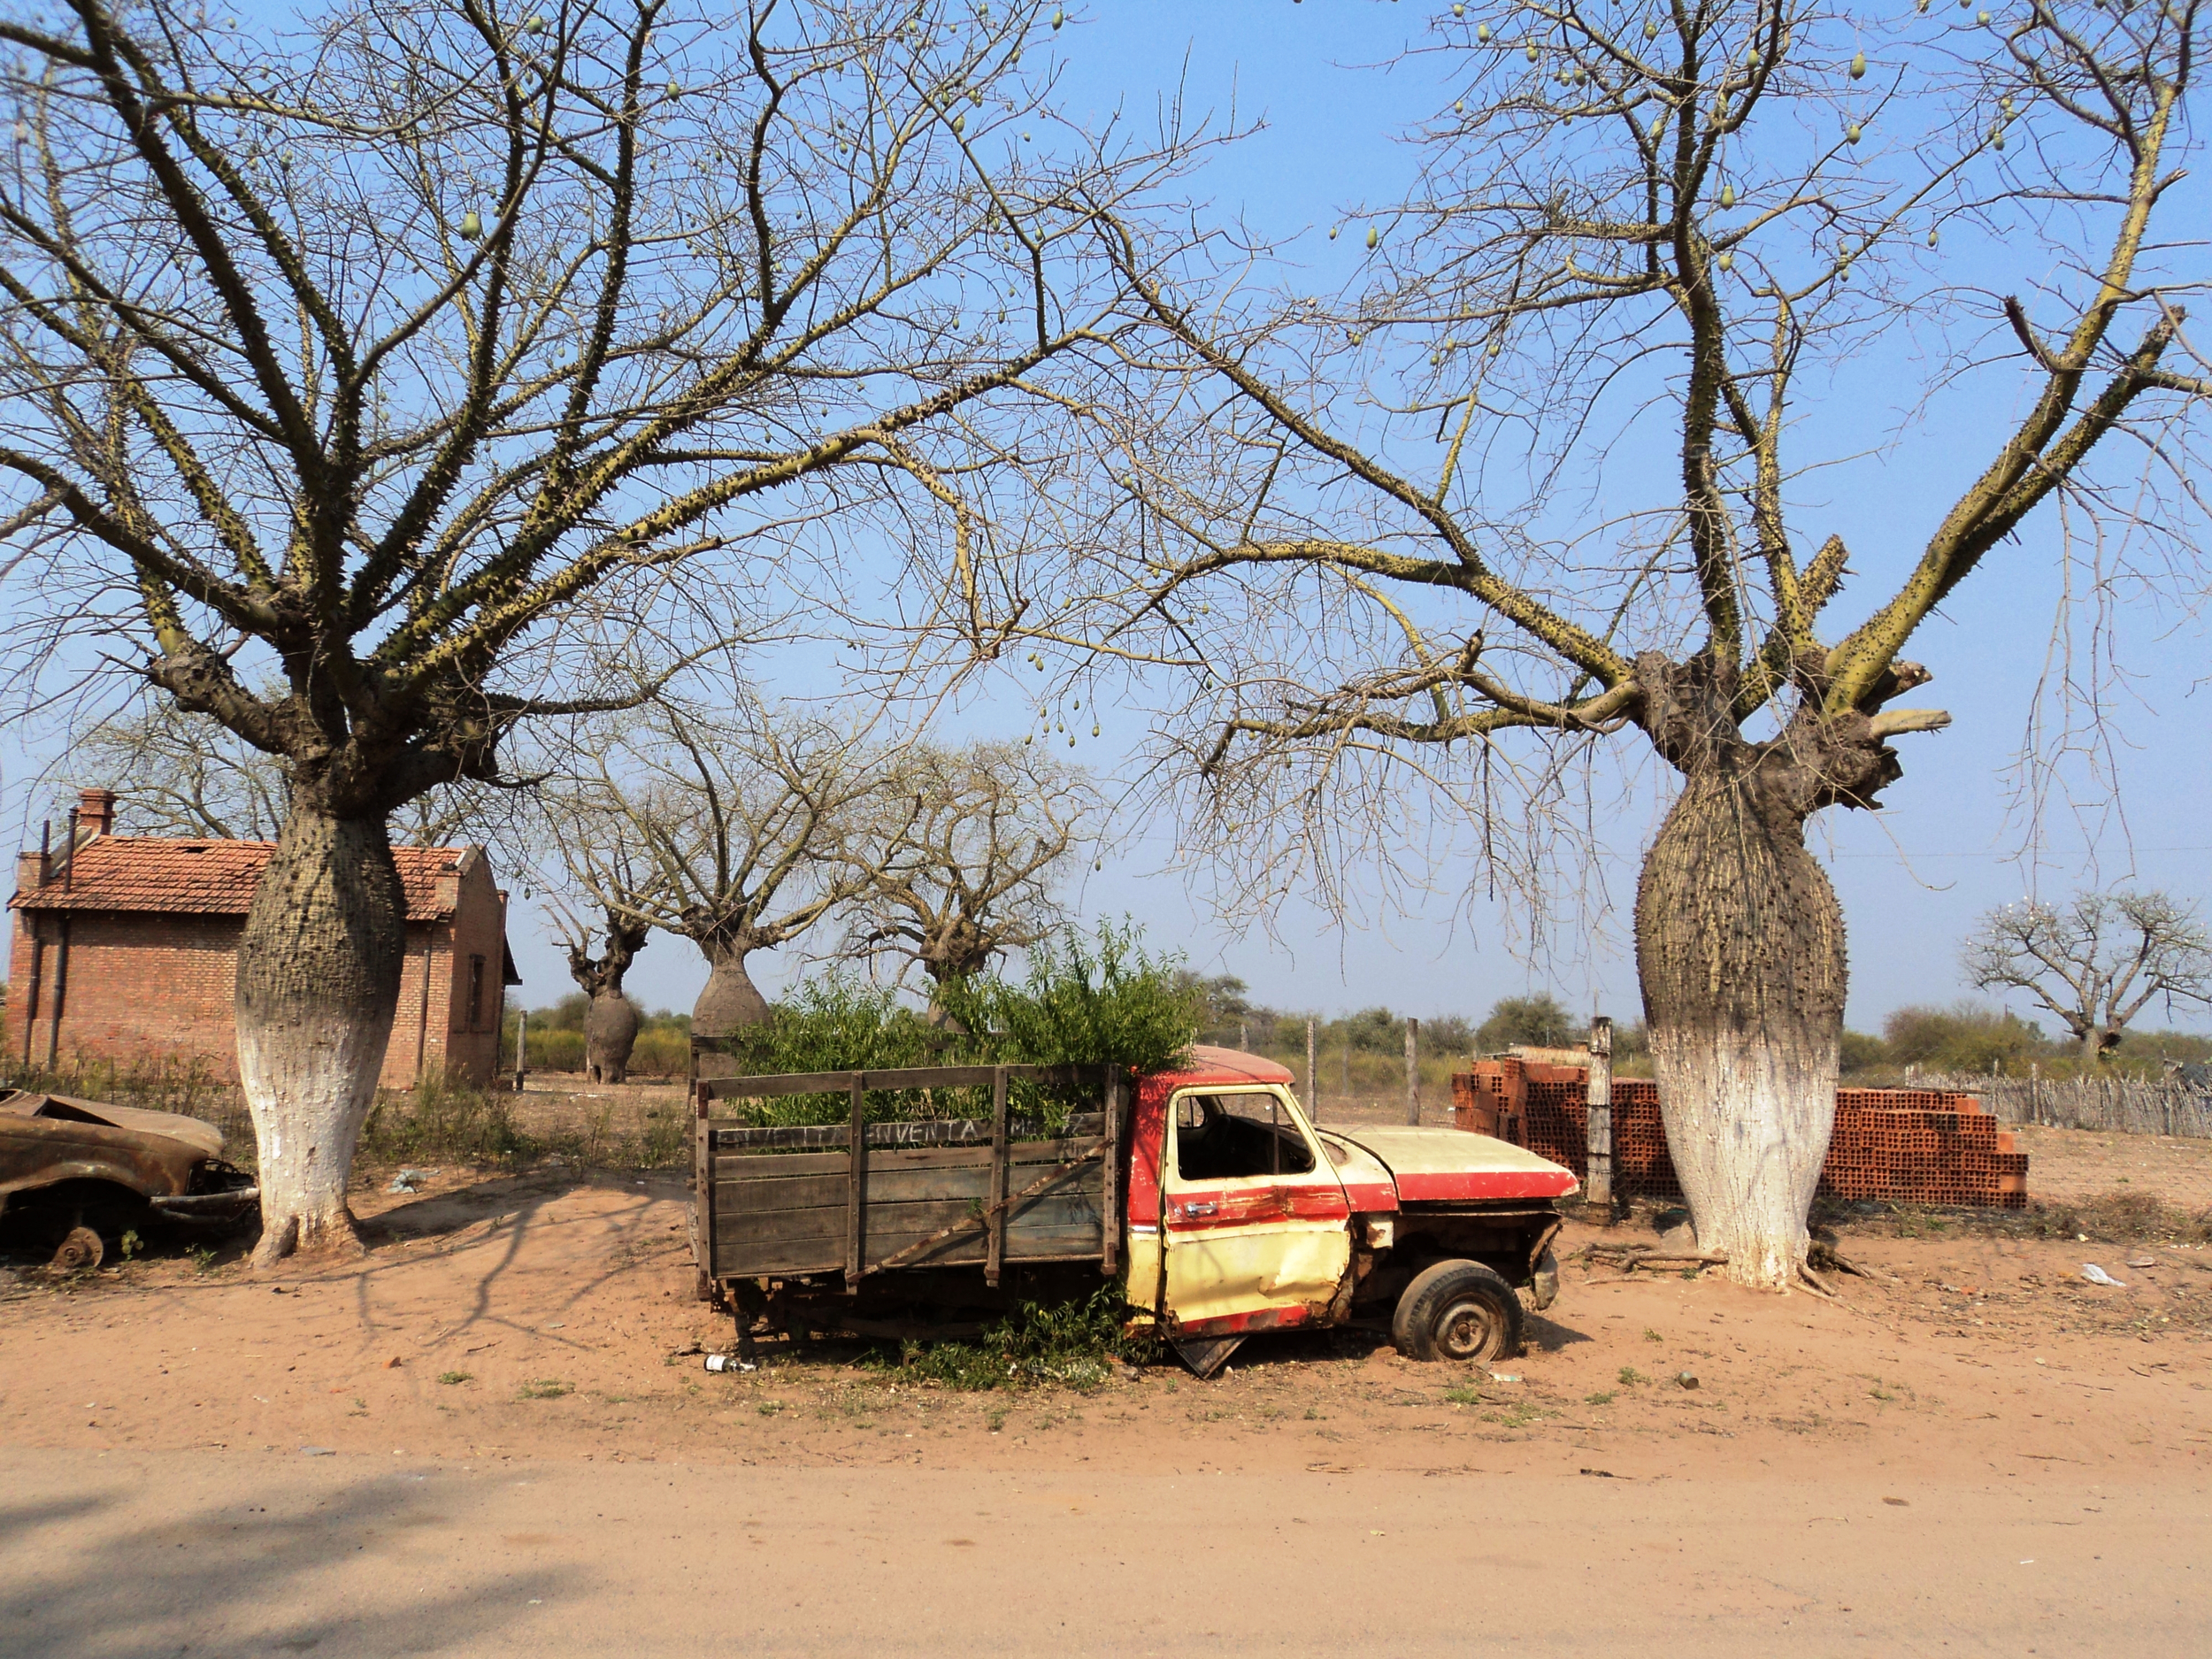 An abandoned truck in the lowland chaco village of Dragones.